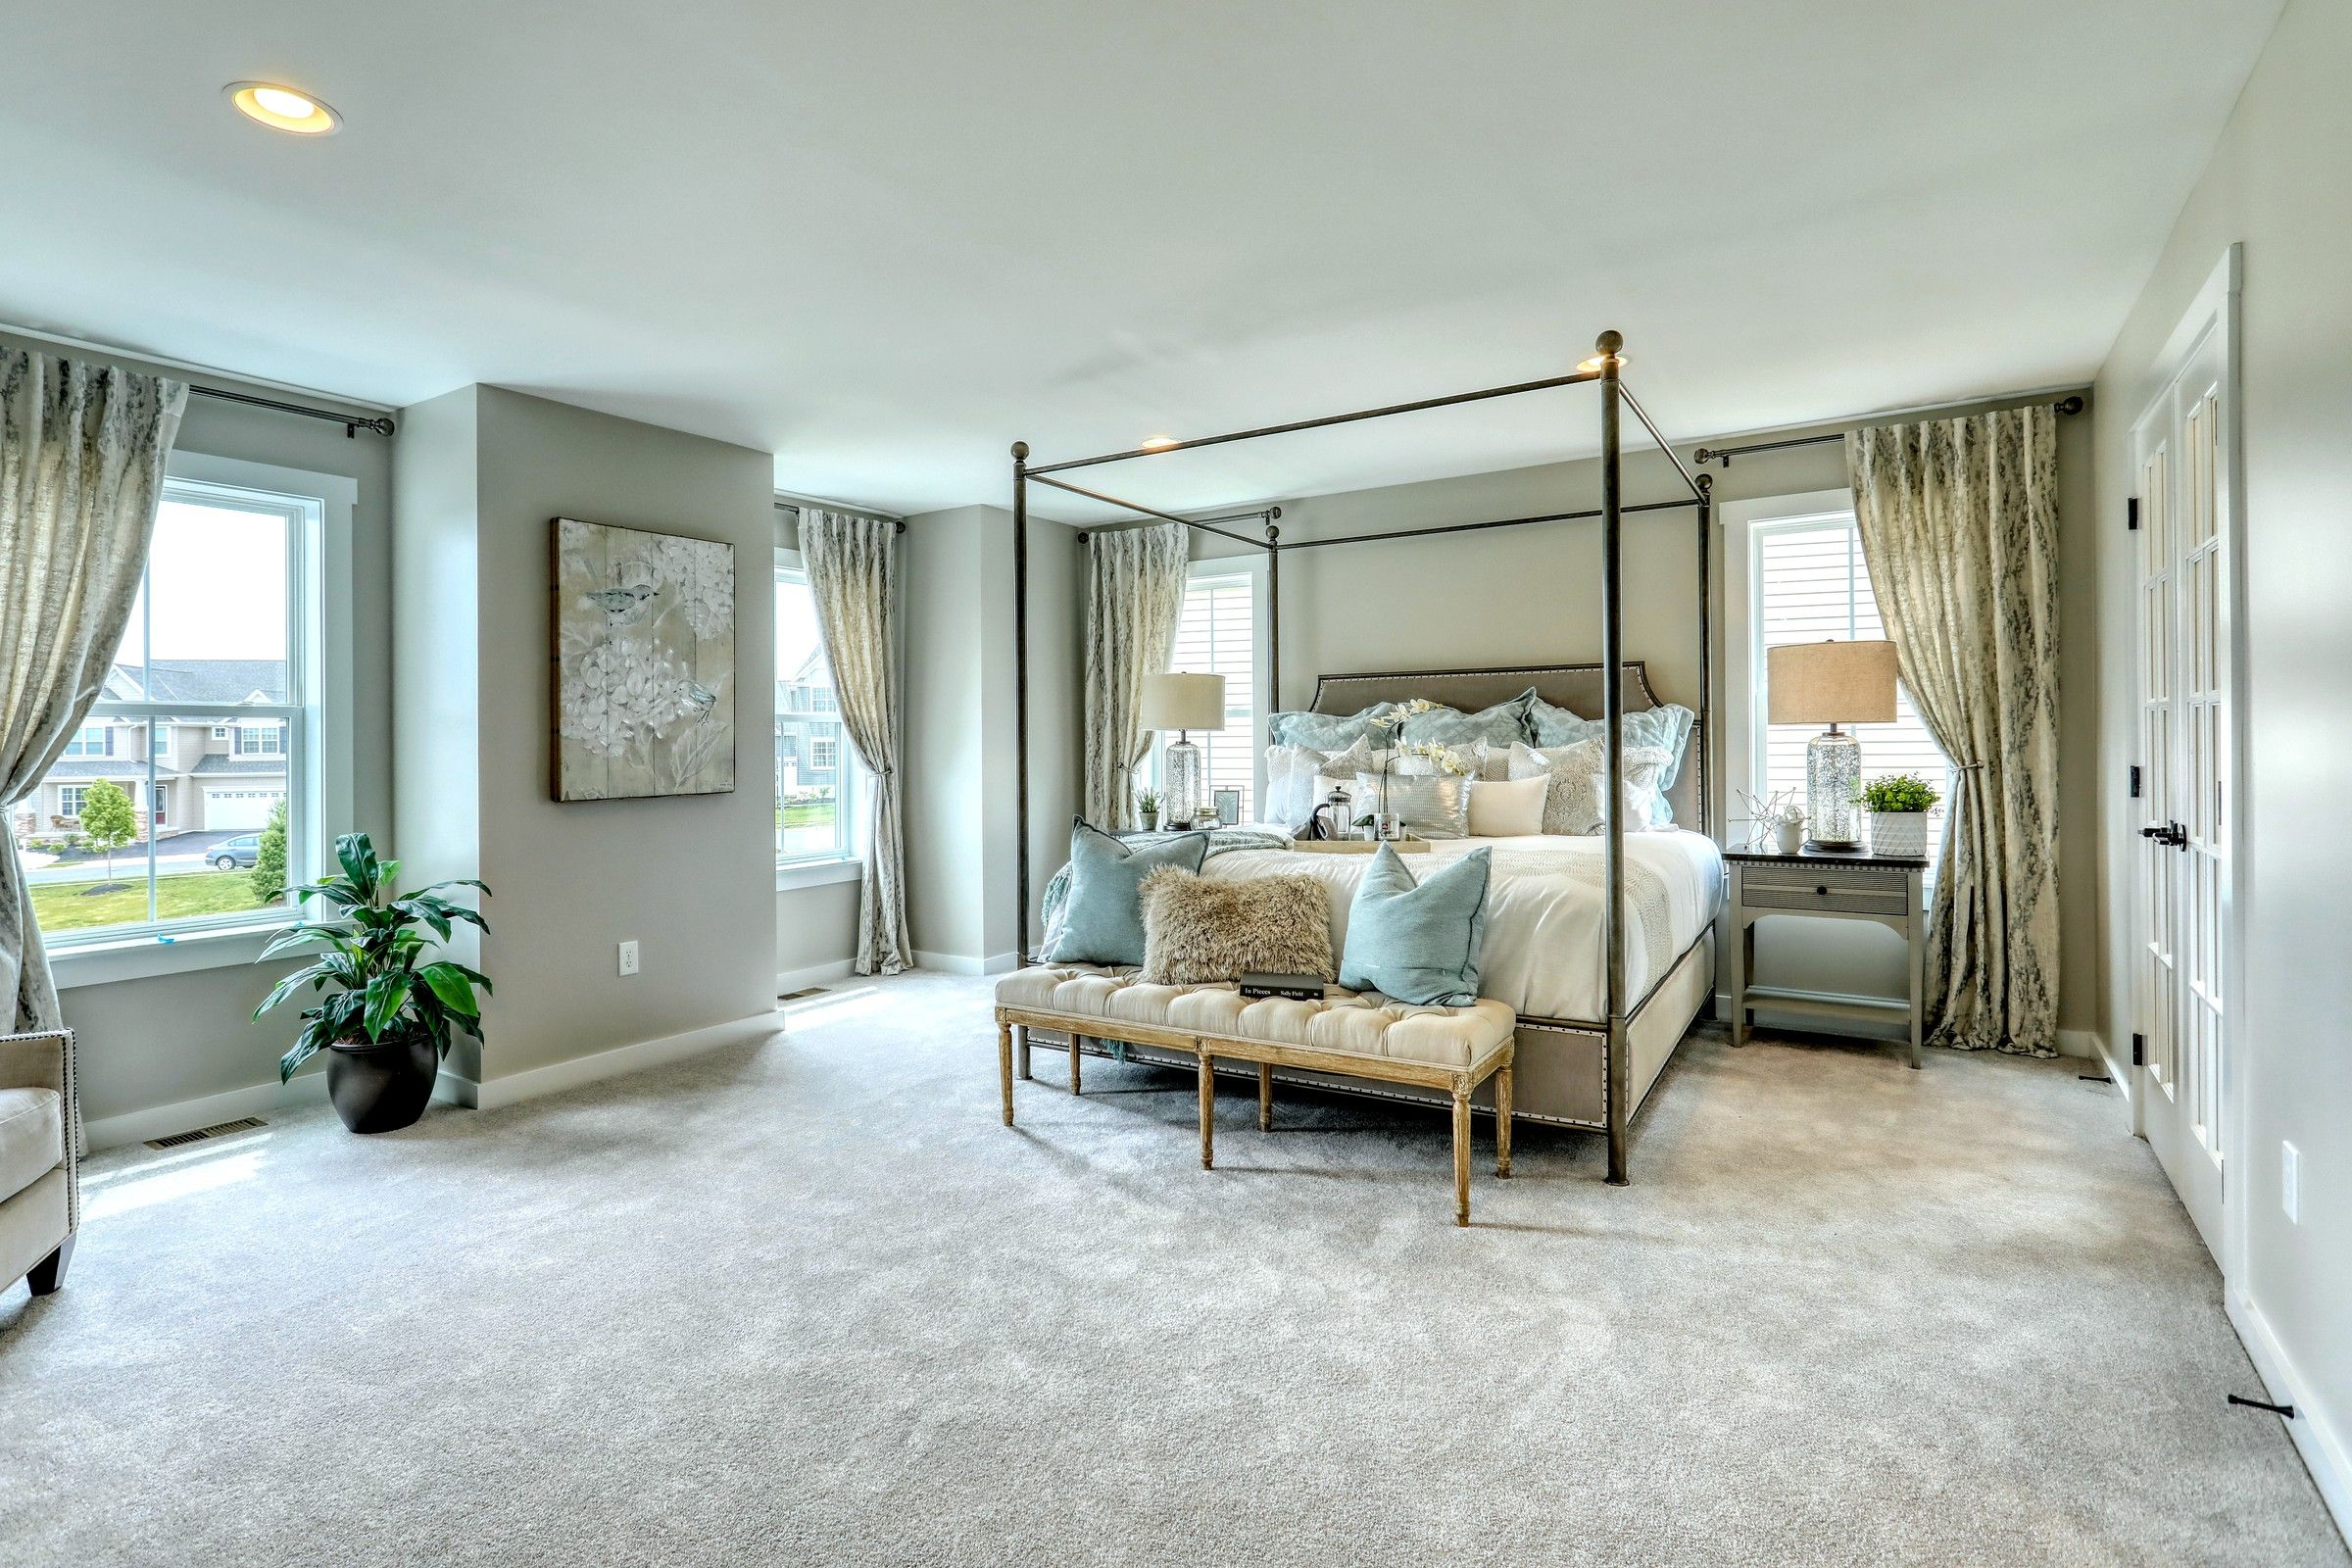 Bedroom featured in the Manchester Traditional By Keystone Custom Homes in Harrisburg, PA